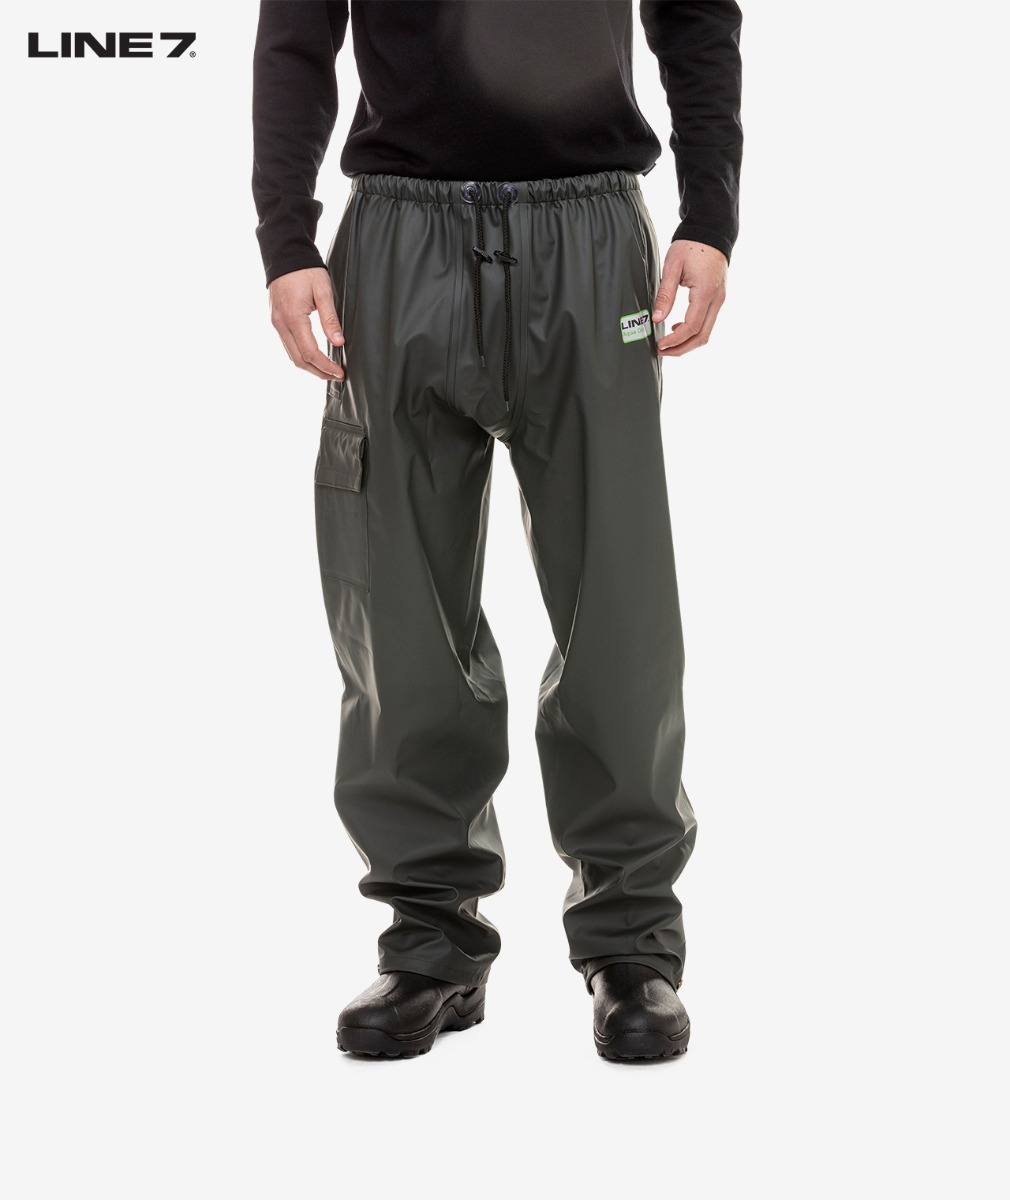 Line 7 Men's Aqua Dairy Waterproof Over Trouser